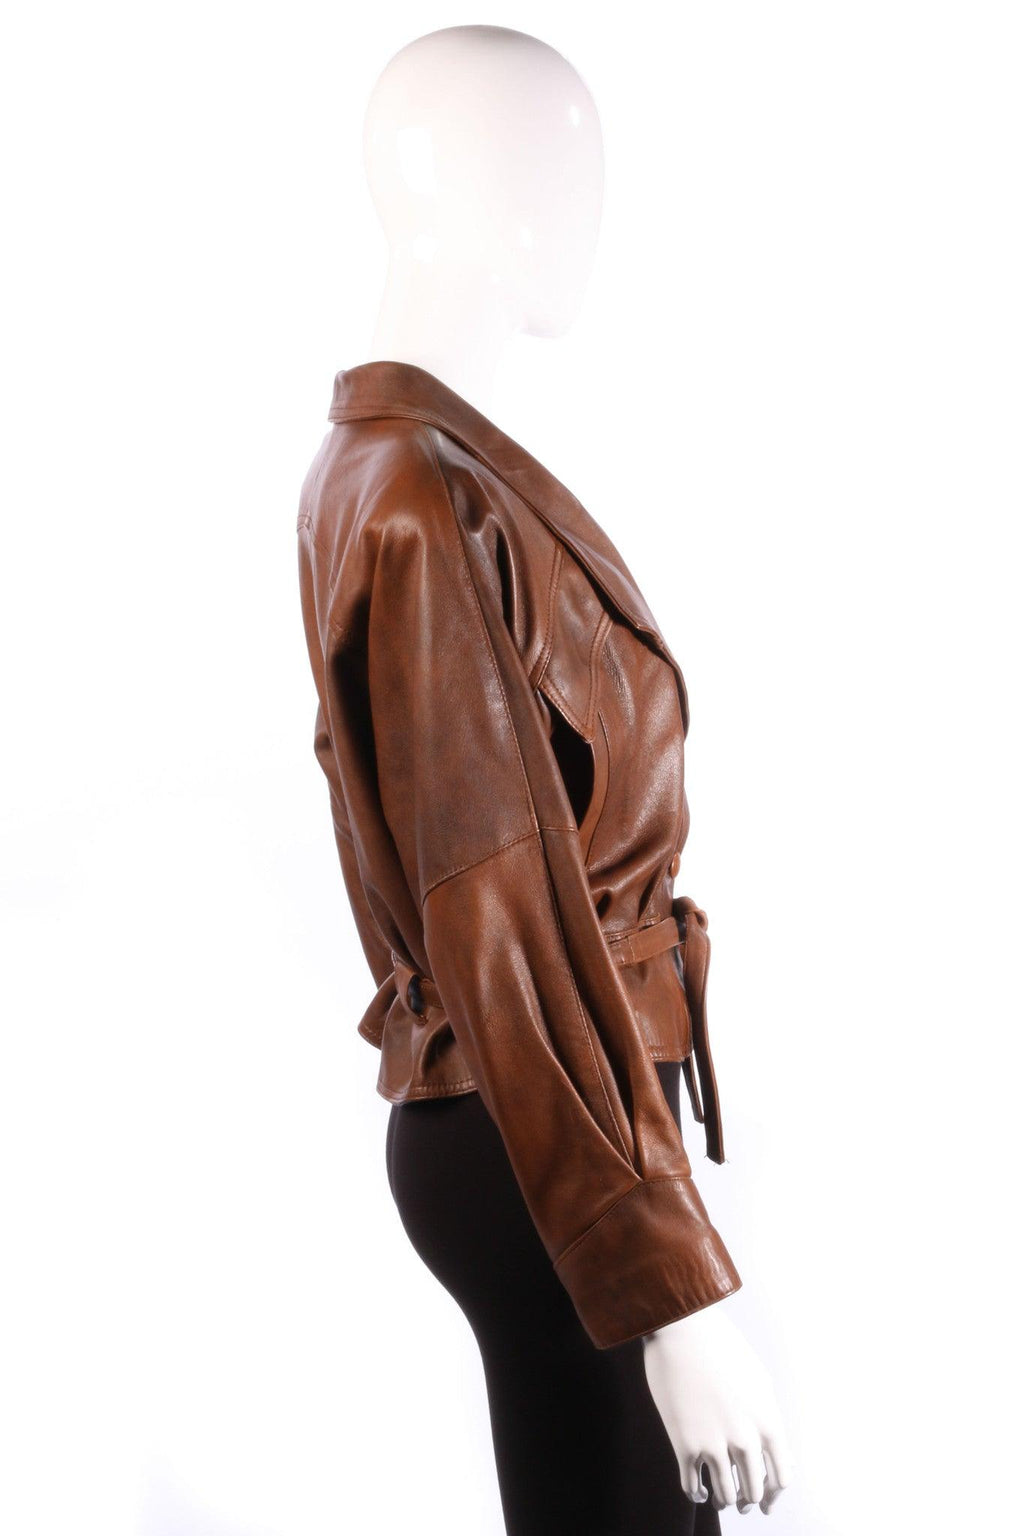 Antica Pelleria brown leather jacket side